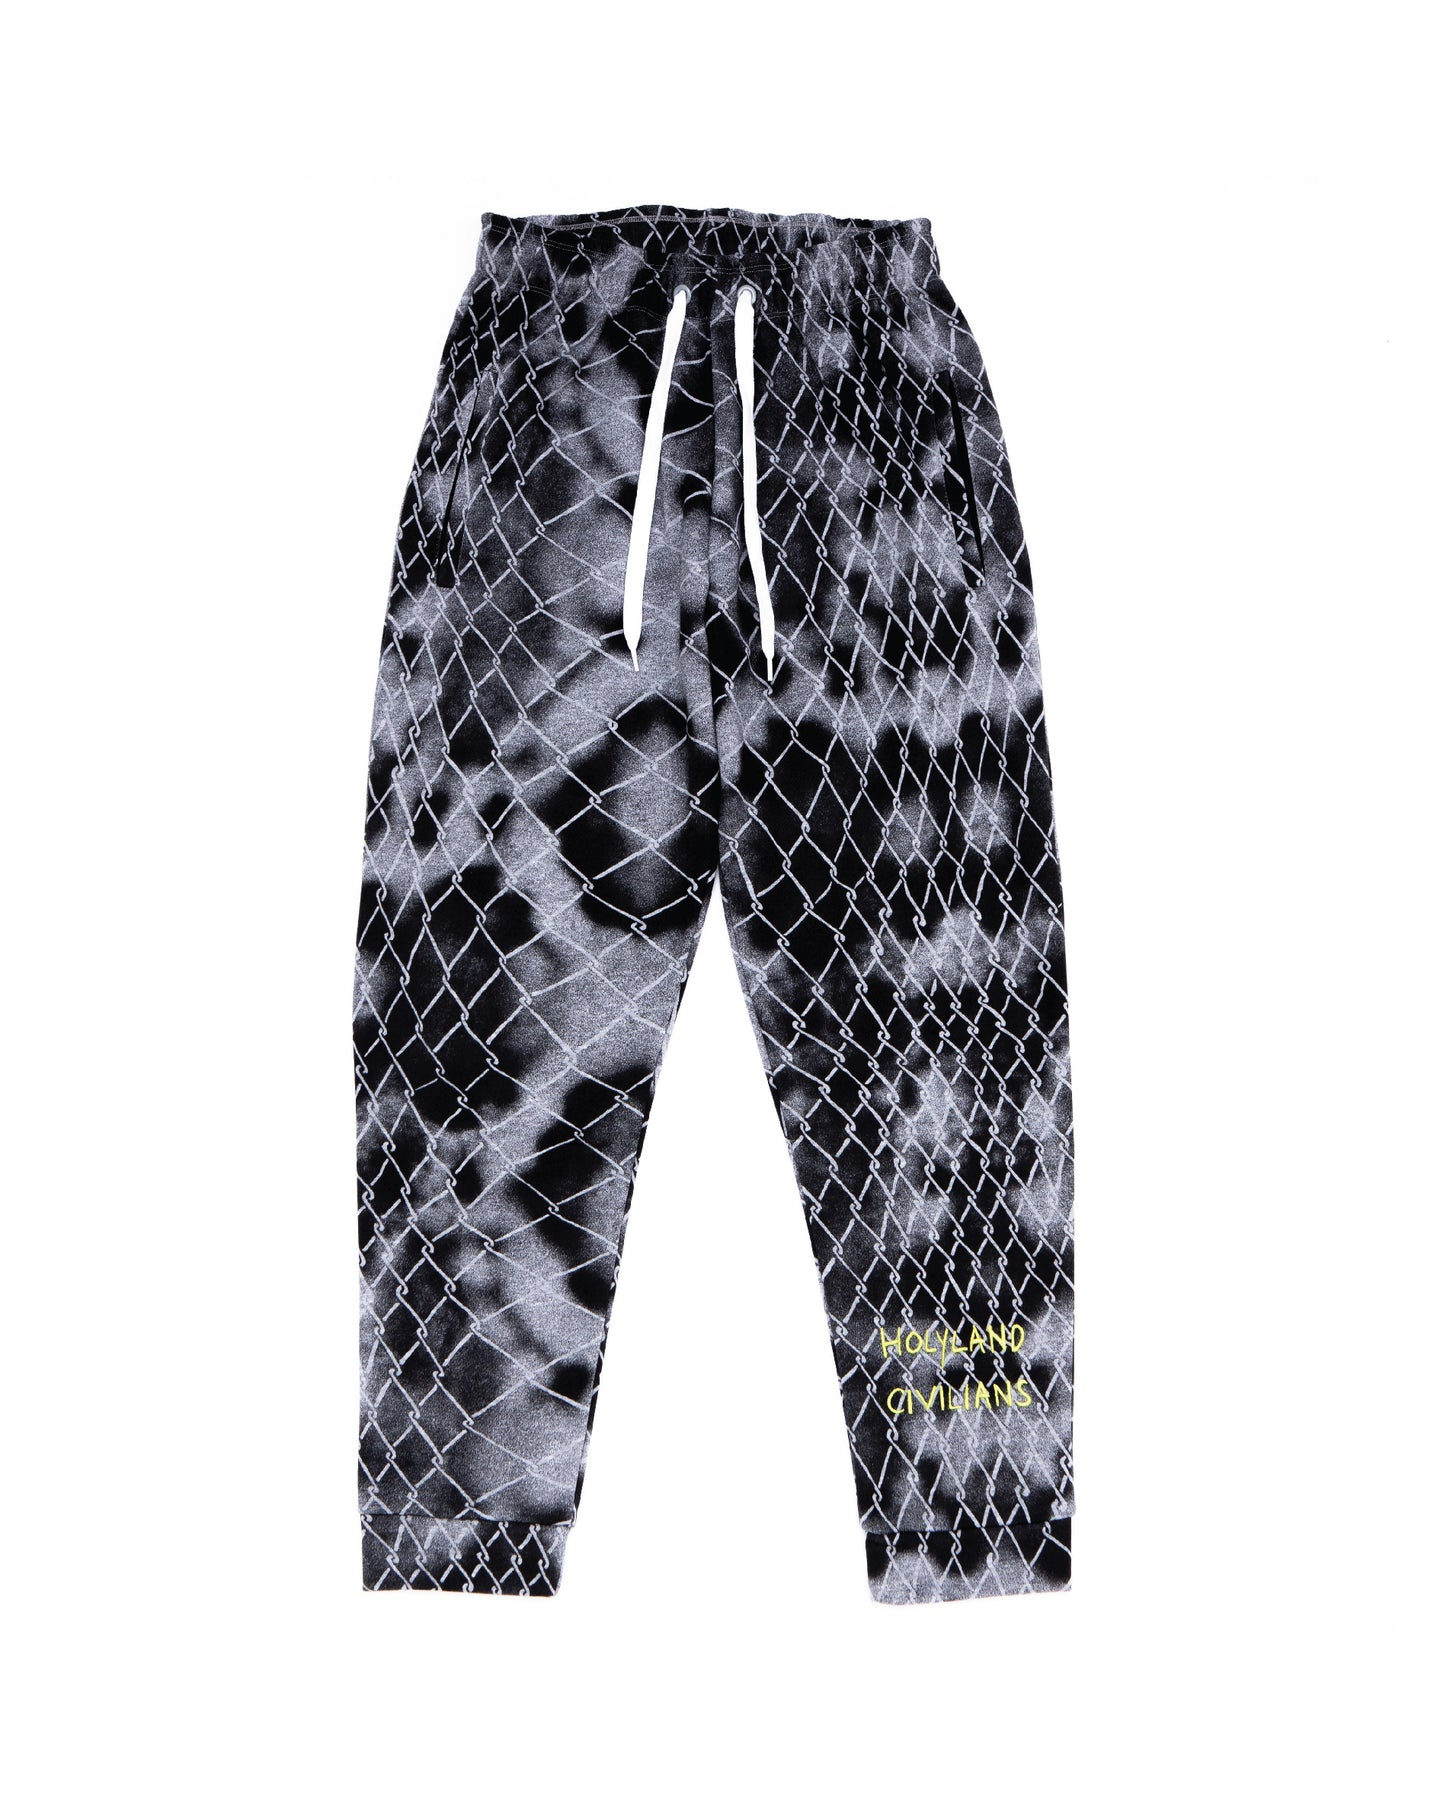 NETSNAKE SWEAT PANTS